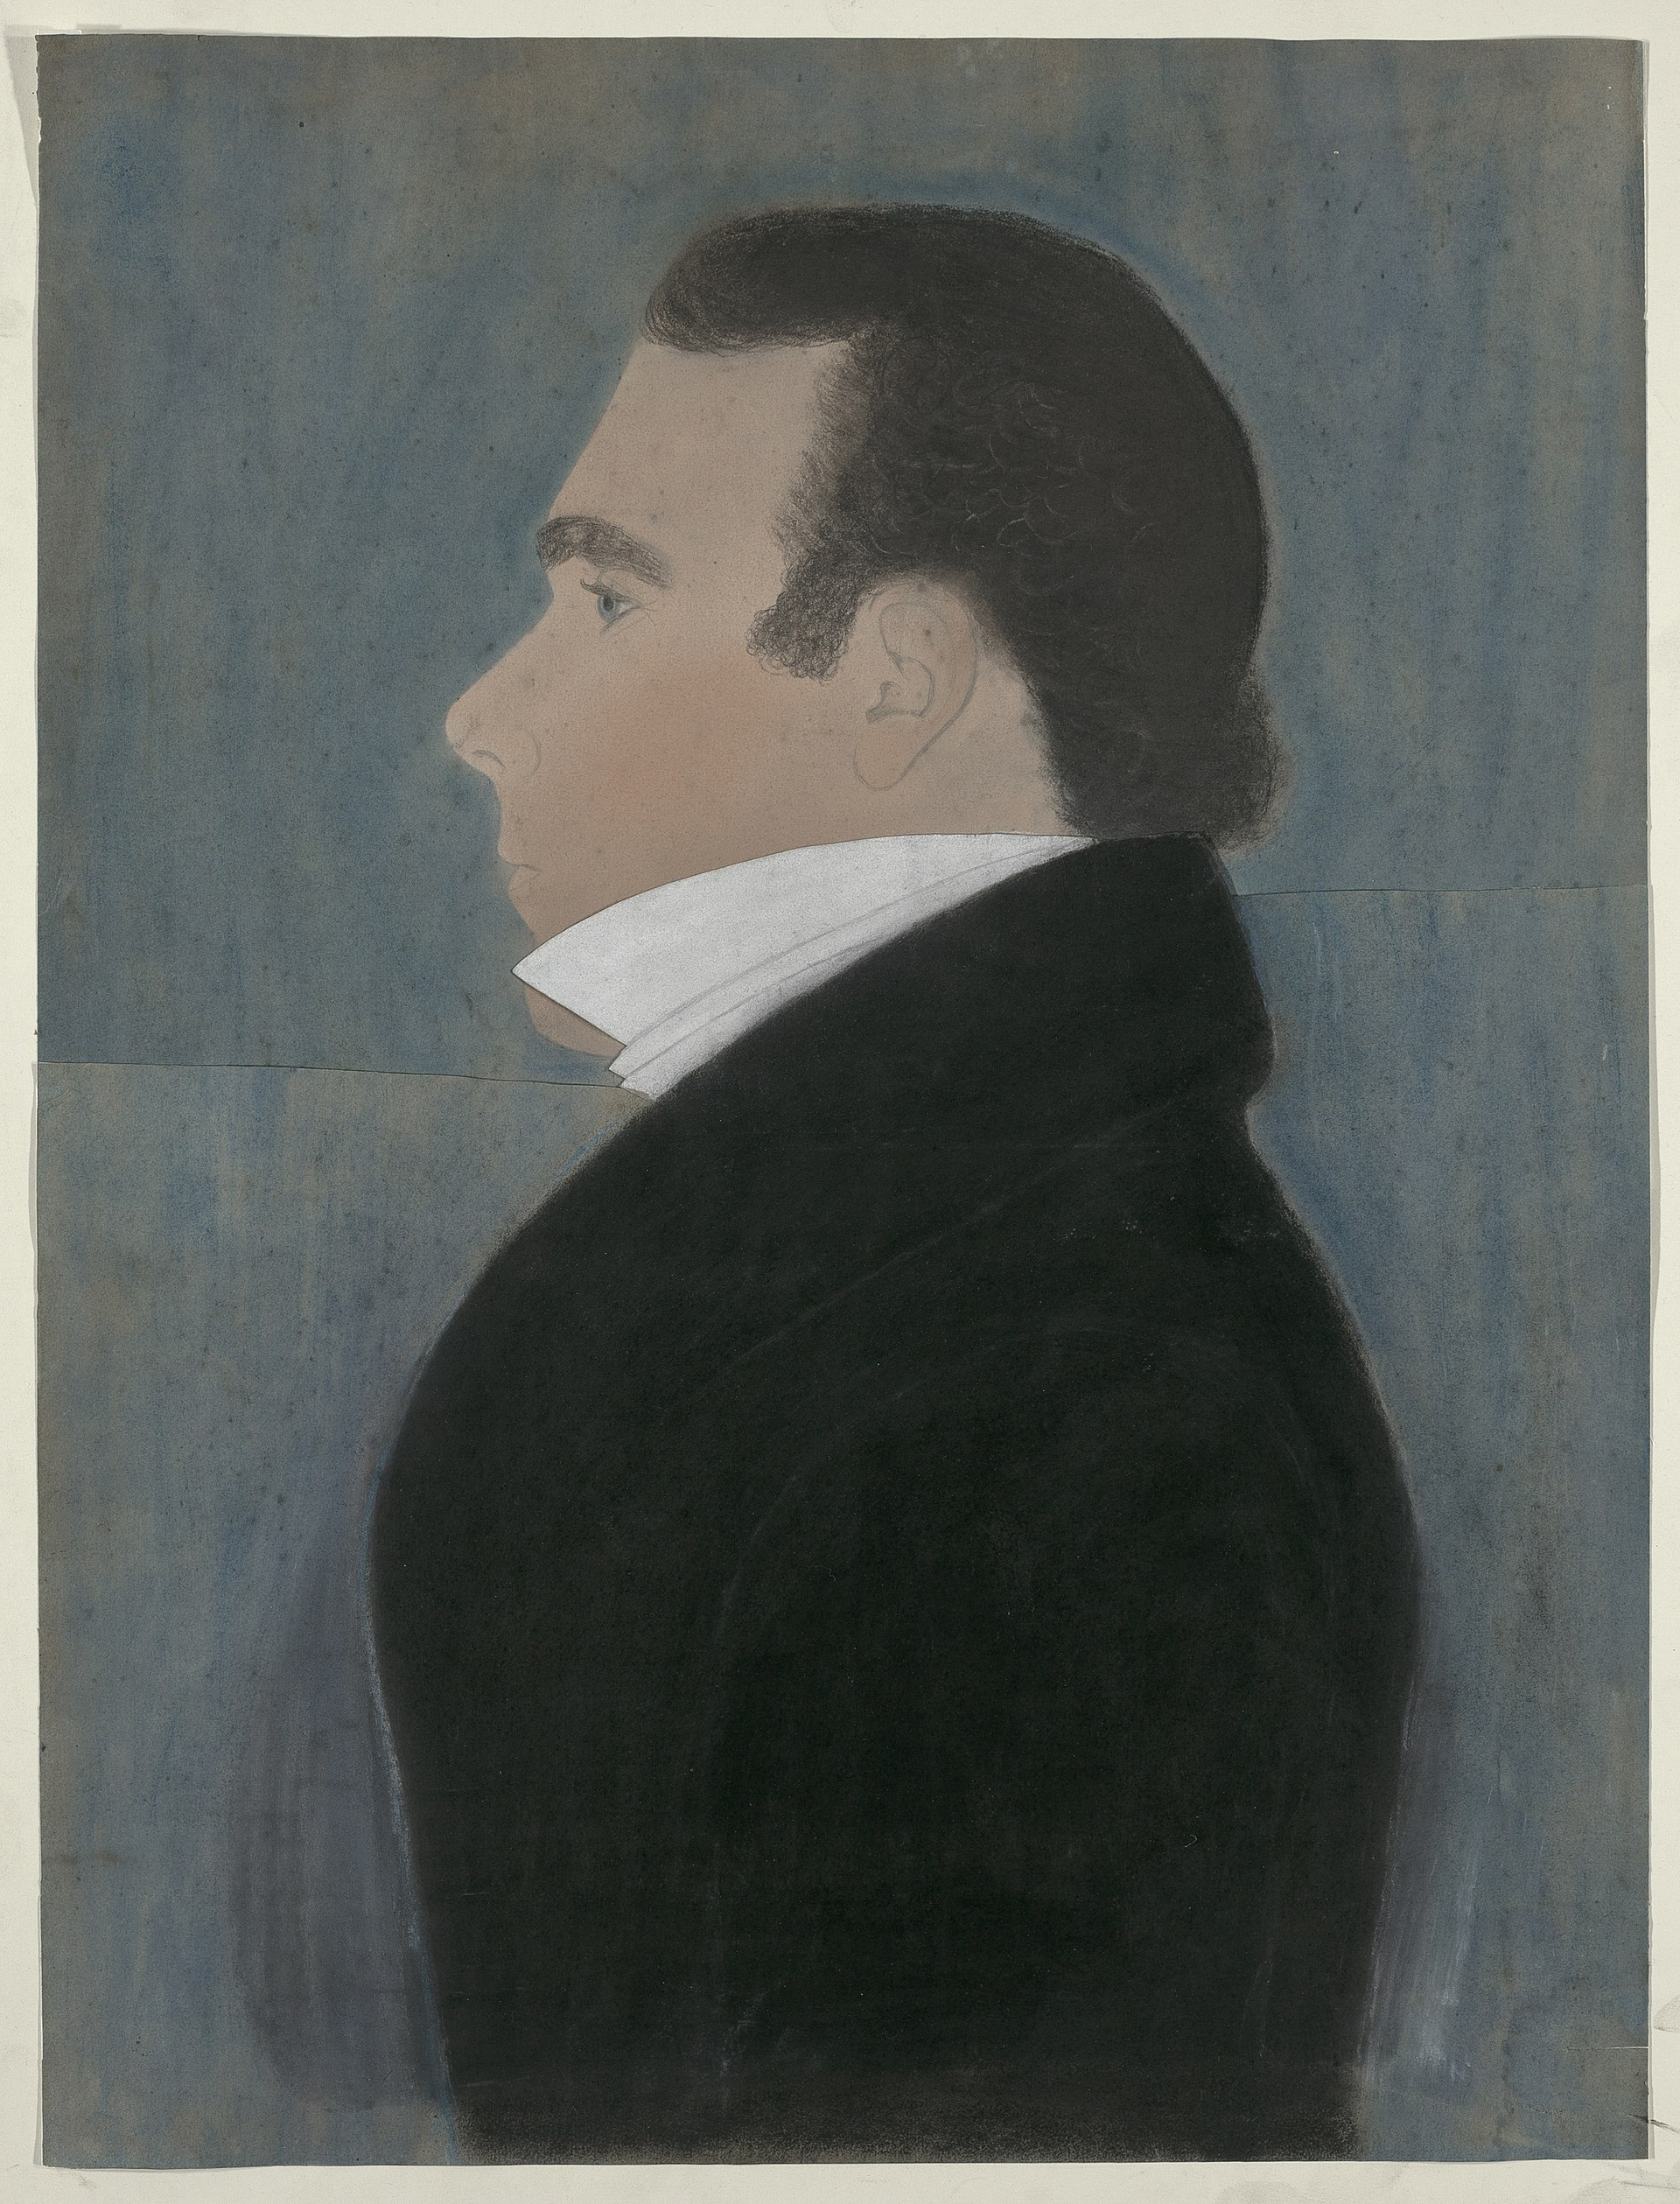 1920px-Ruth_Henshaw_Bascom,_Mr._William_Waters,_c._1825-1830,_NGA_59942.jpg